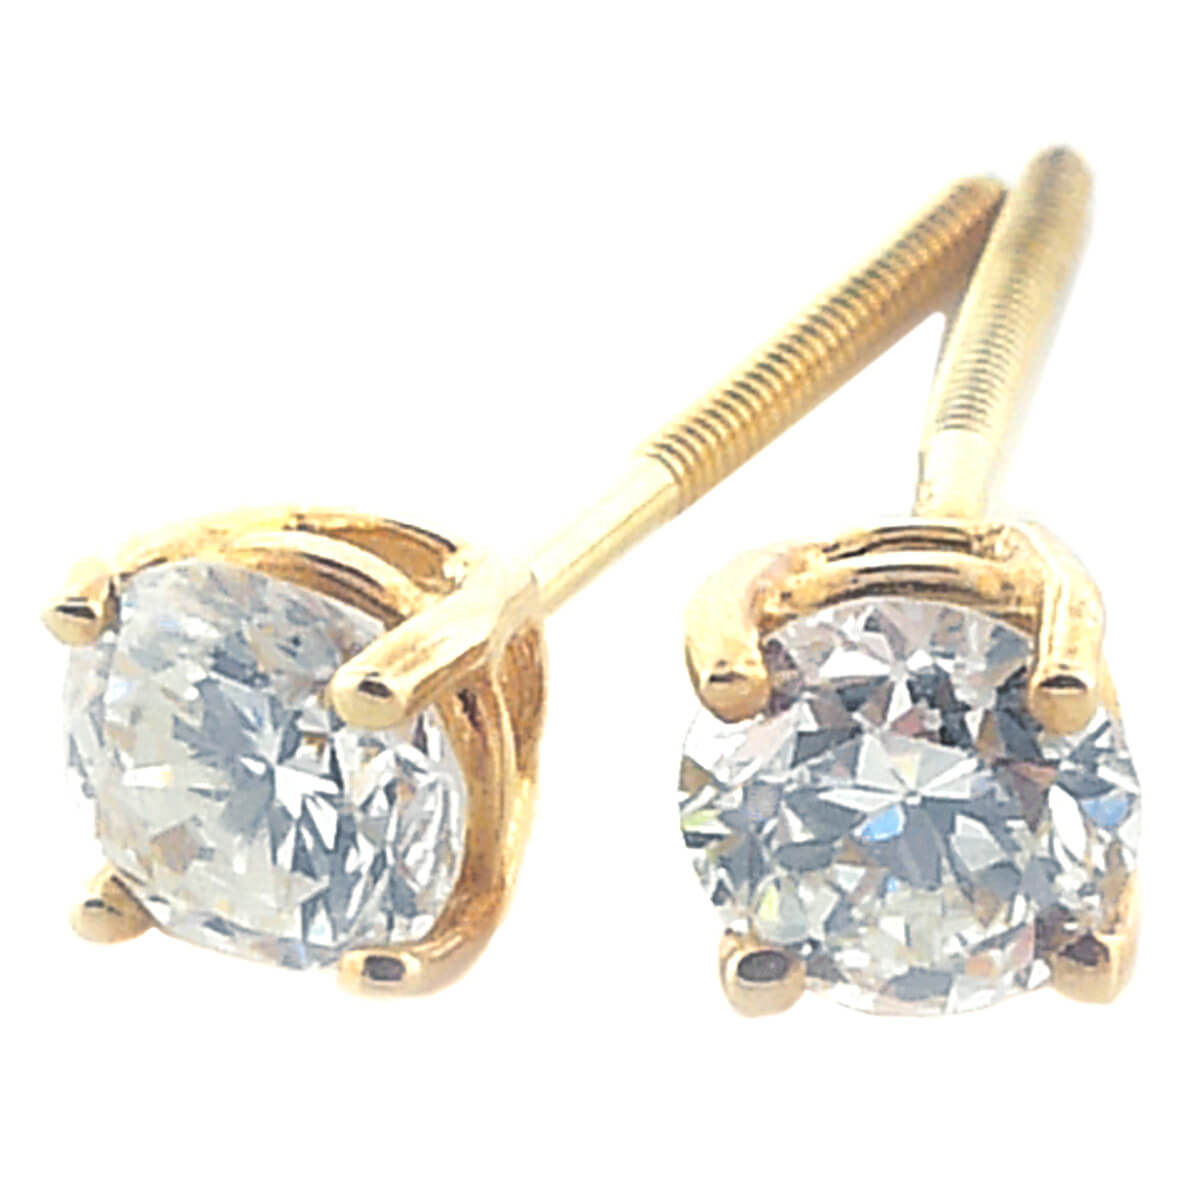 14K Yellow Gold 0.52ct Diamond Stud Earrings